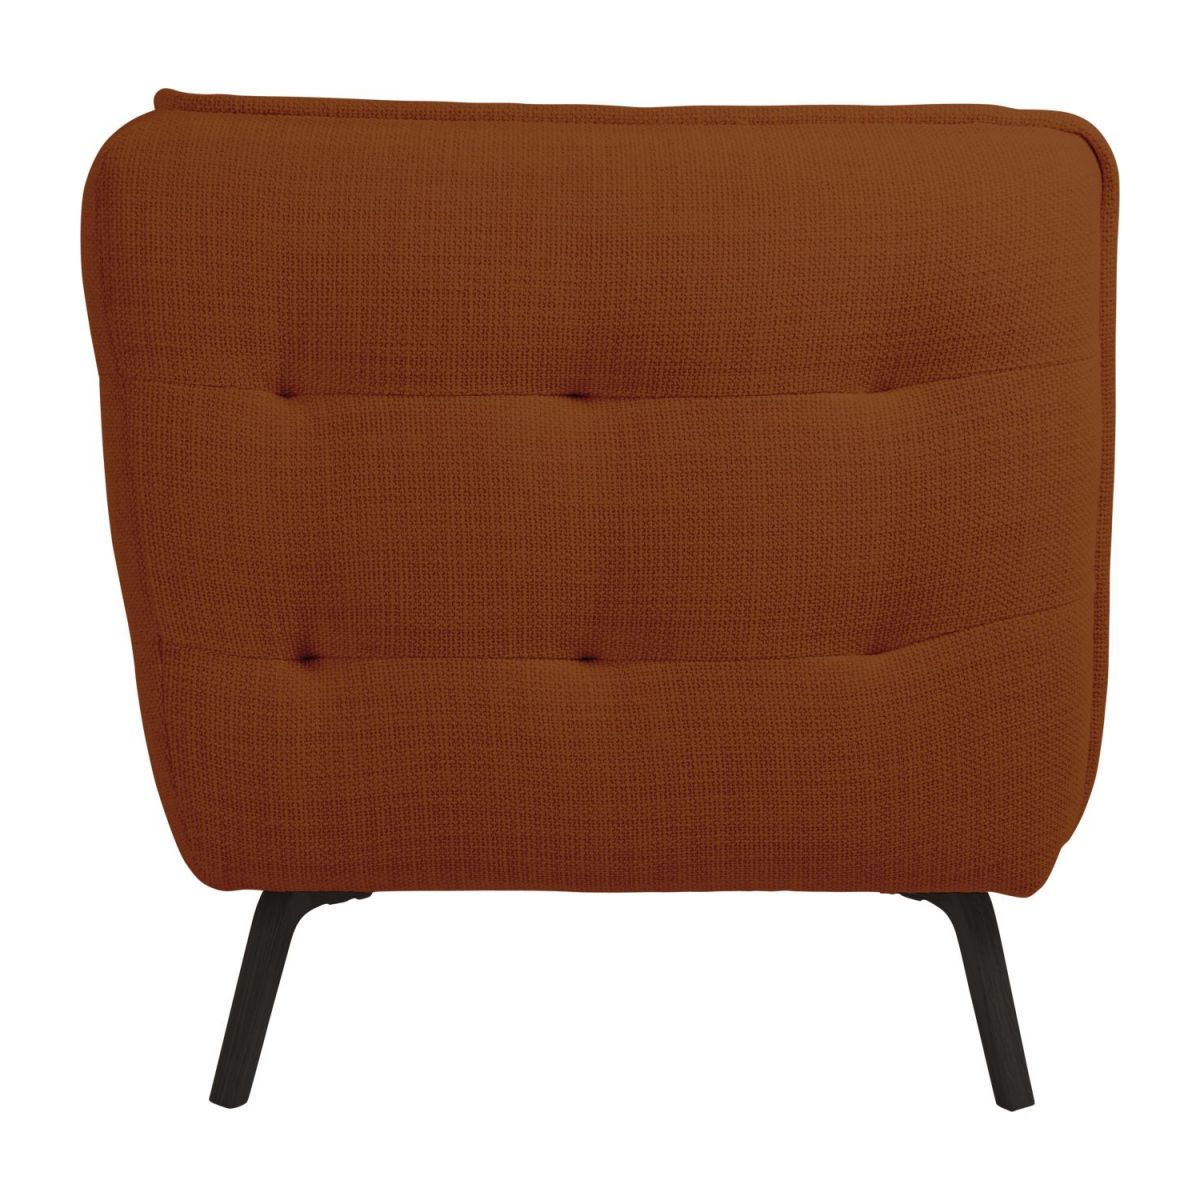 2 seater sofa in Fasoli fabric, warm red rock and dark legs n°3